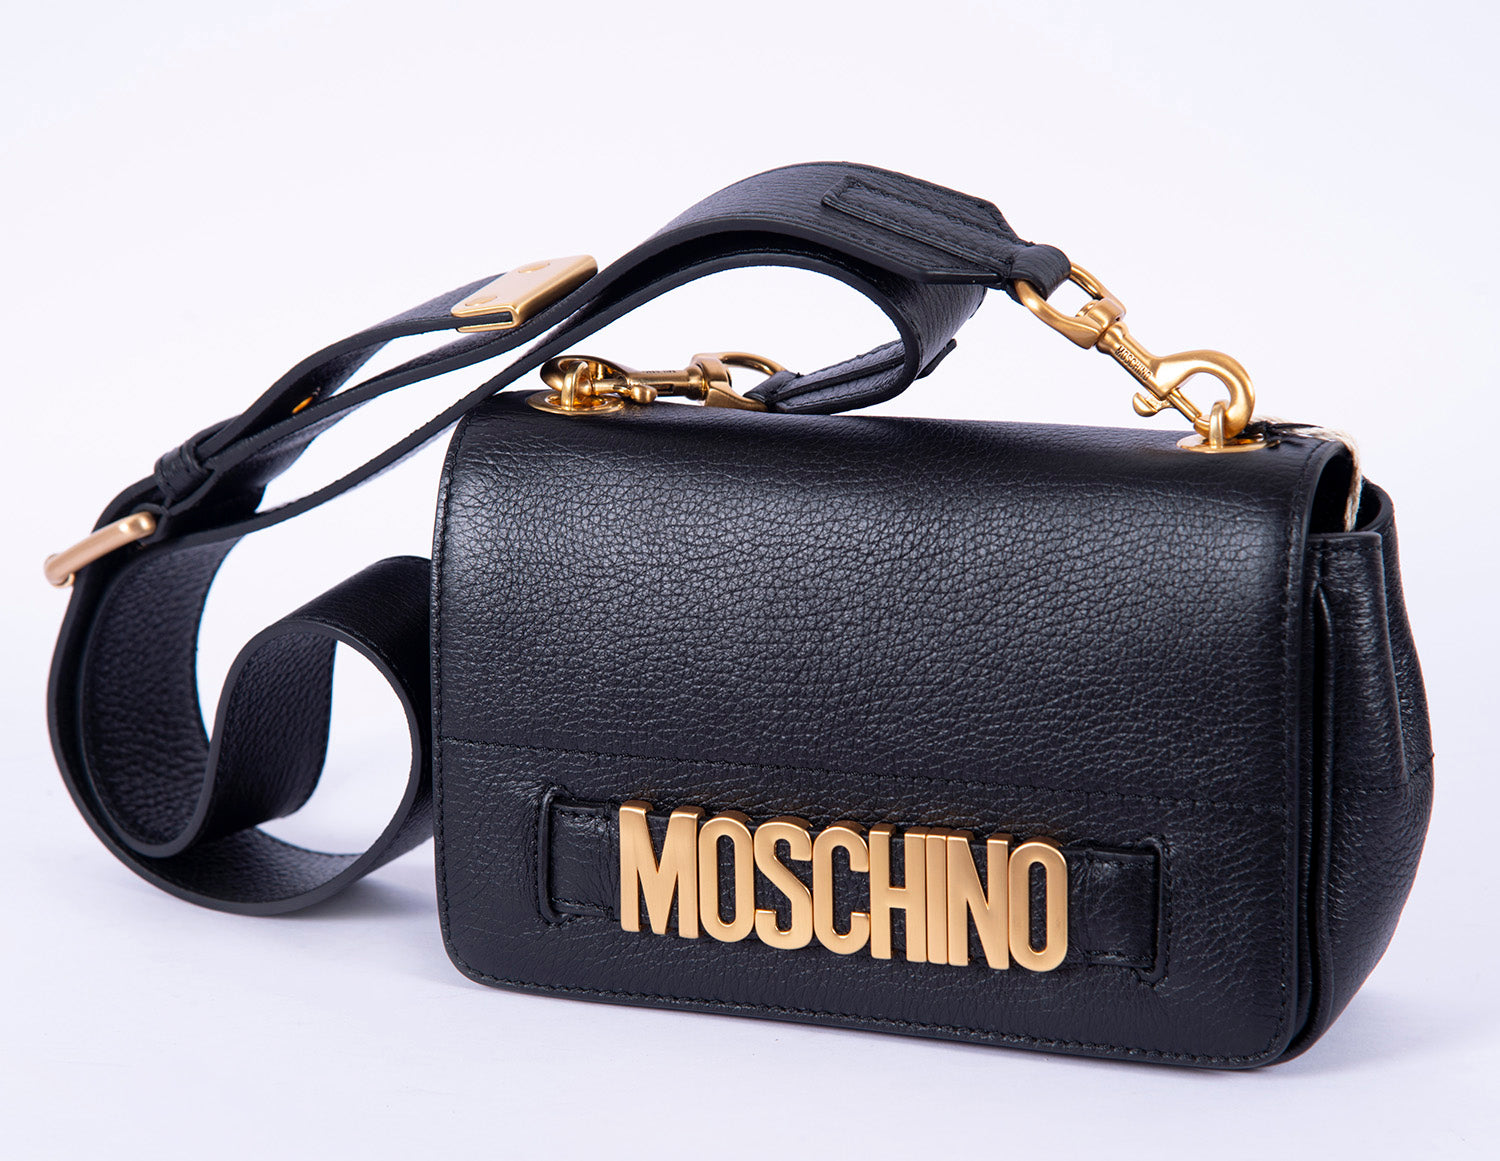 Moschino textured shoulder bag